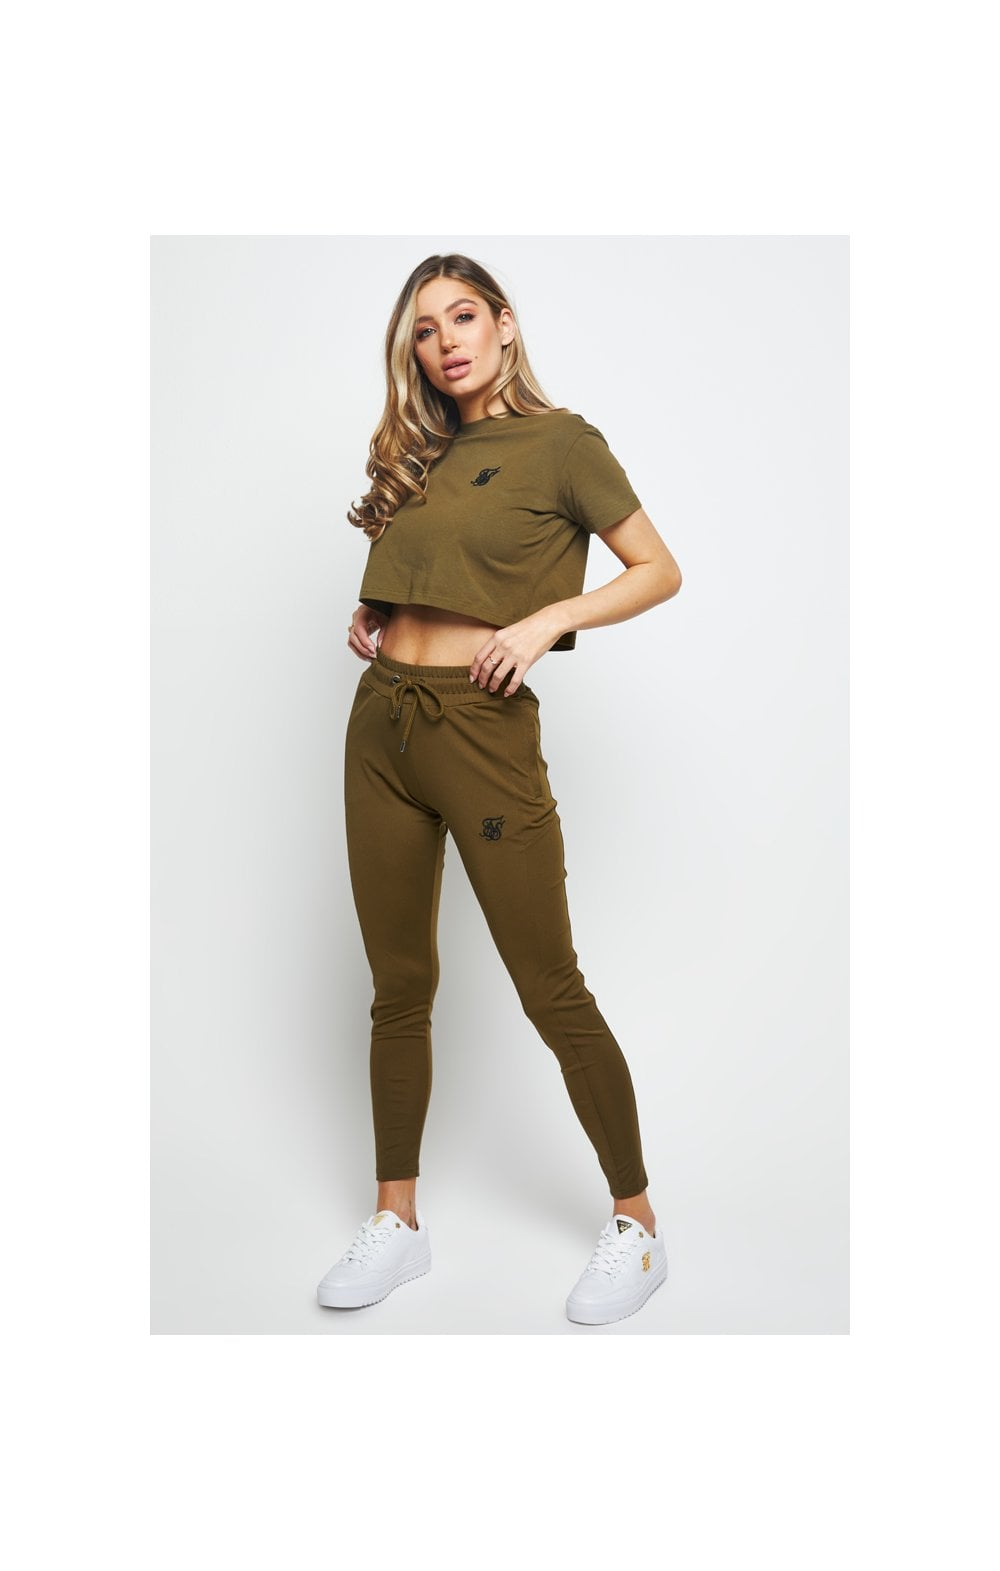 SikSilk Retro Fit Box Tee - Khaki (2)